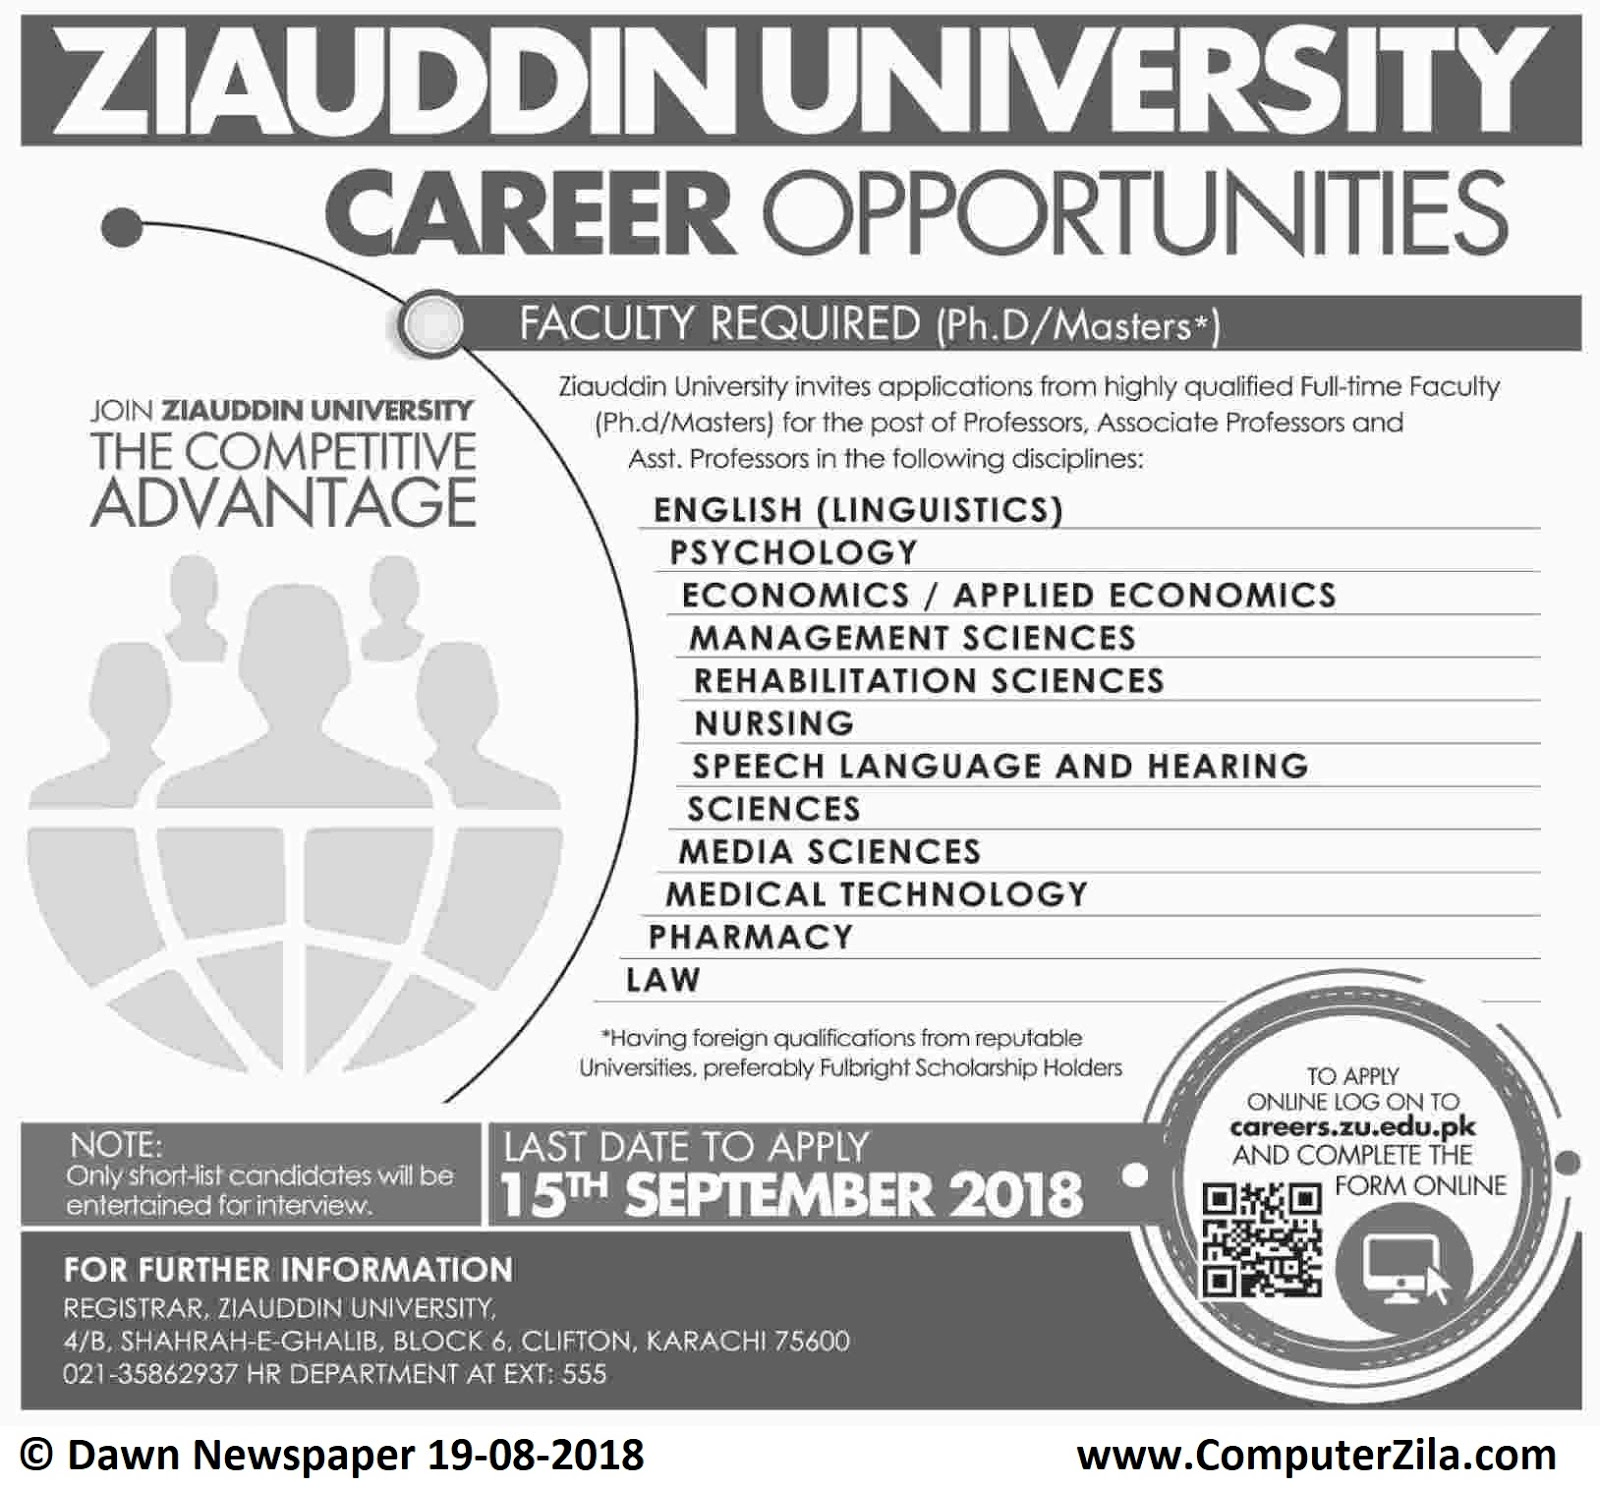 Career Opportunities (Faculty Required) at Ziauddin University